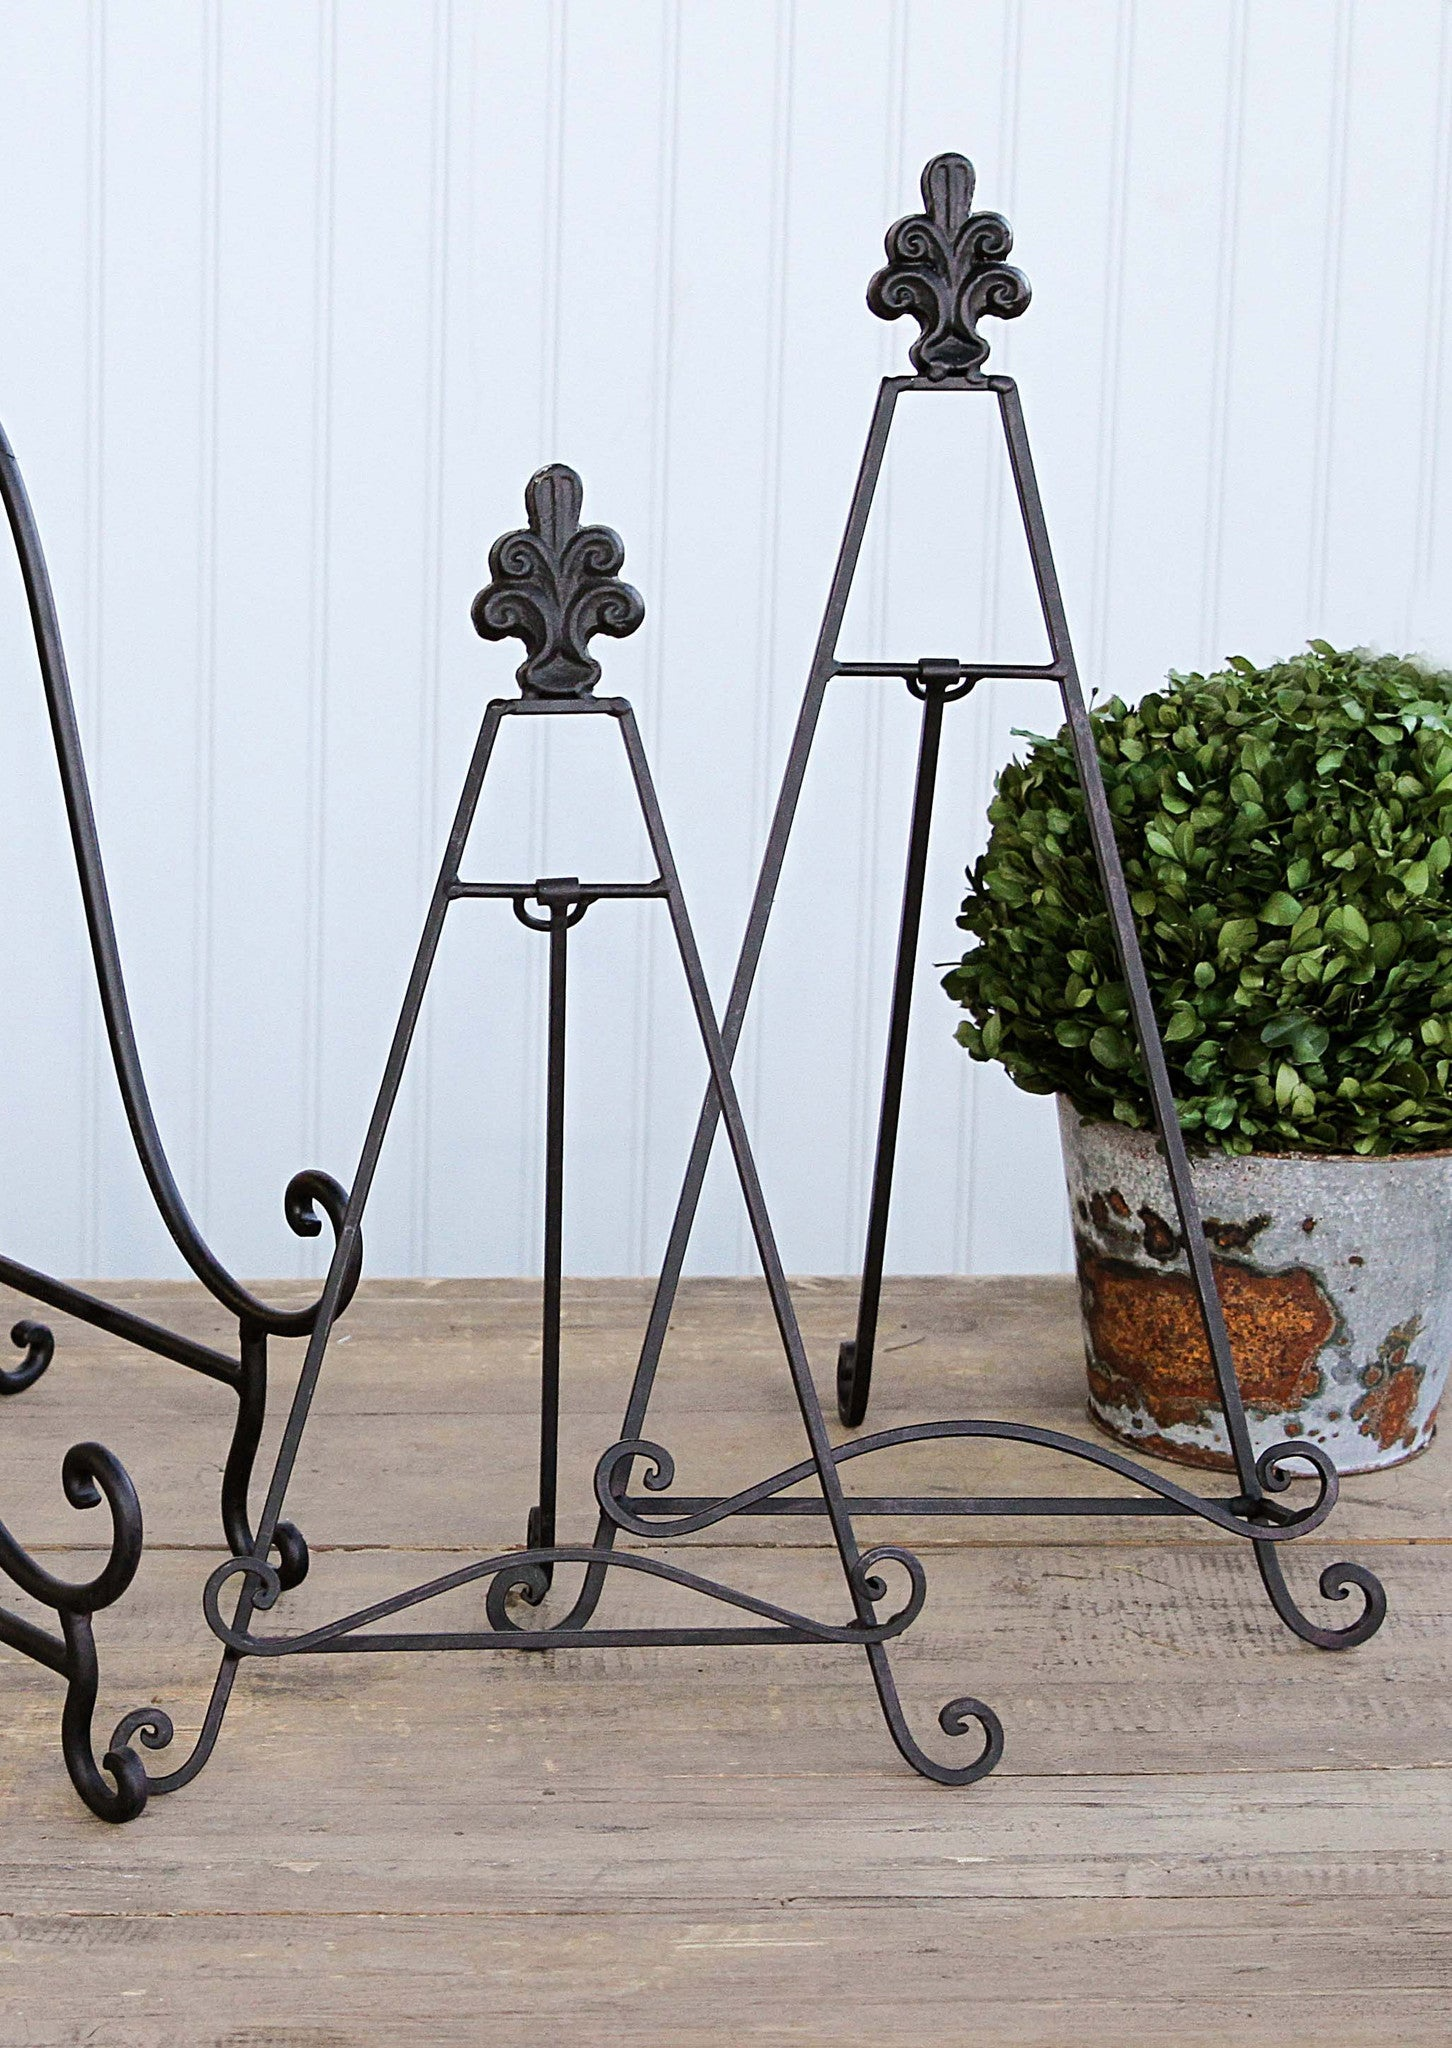 Metal Stands with Fleur-de-lis Finial